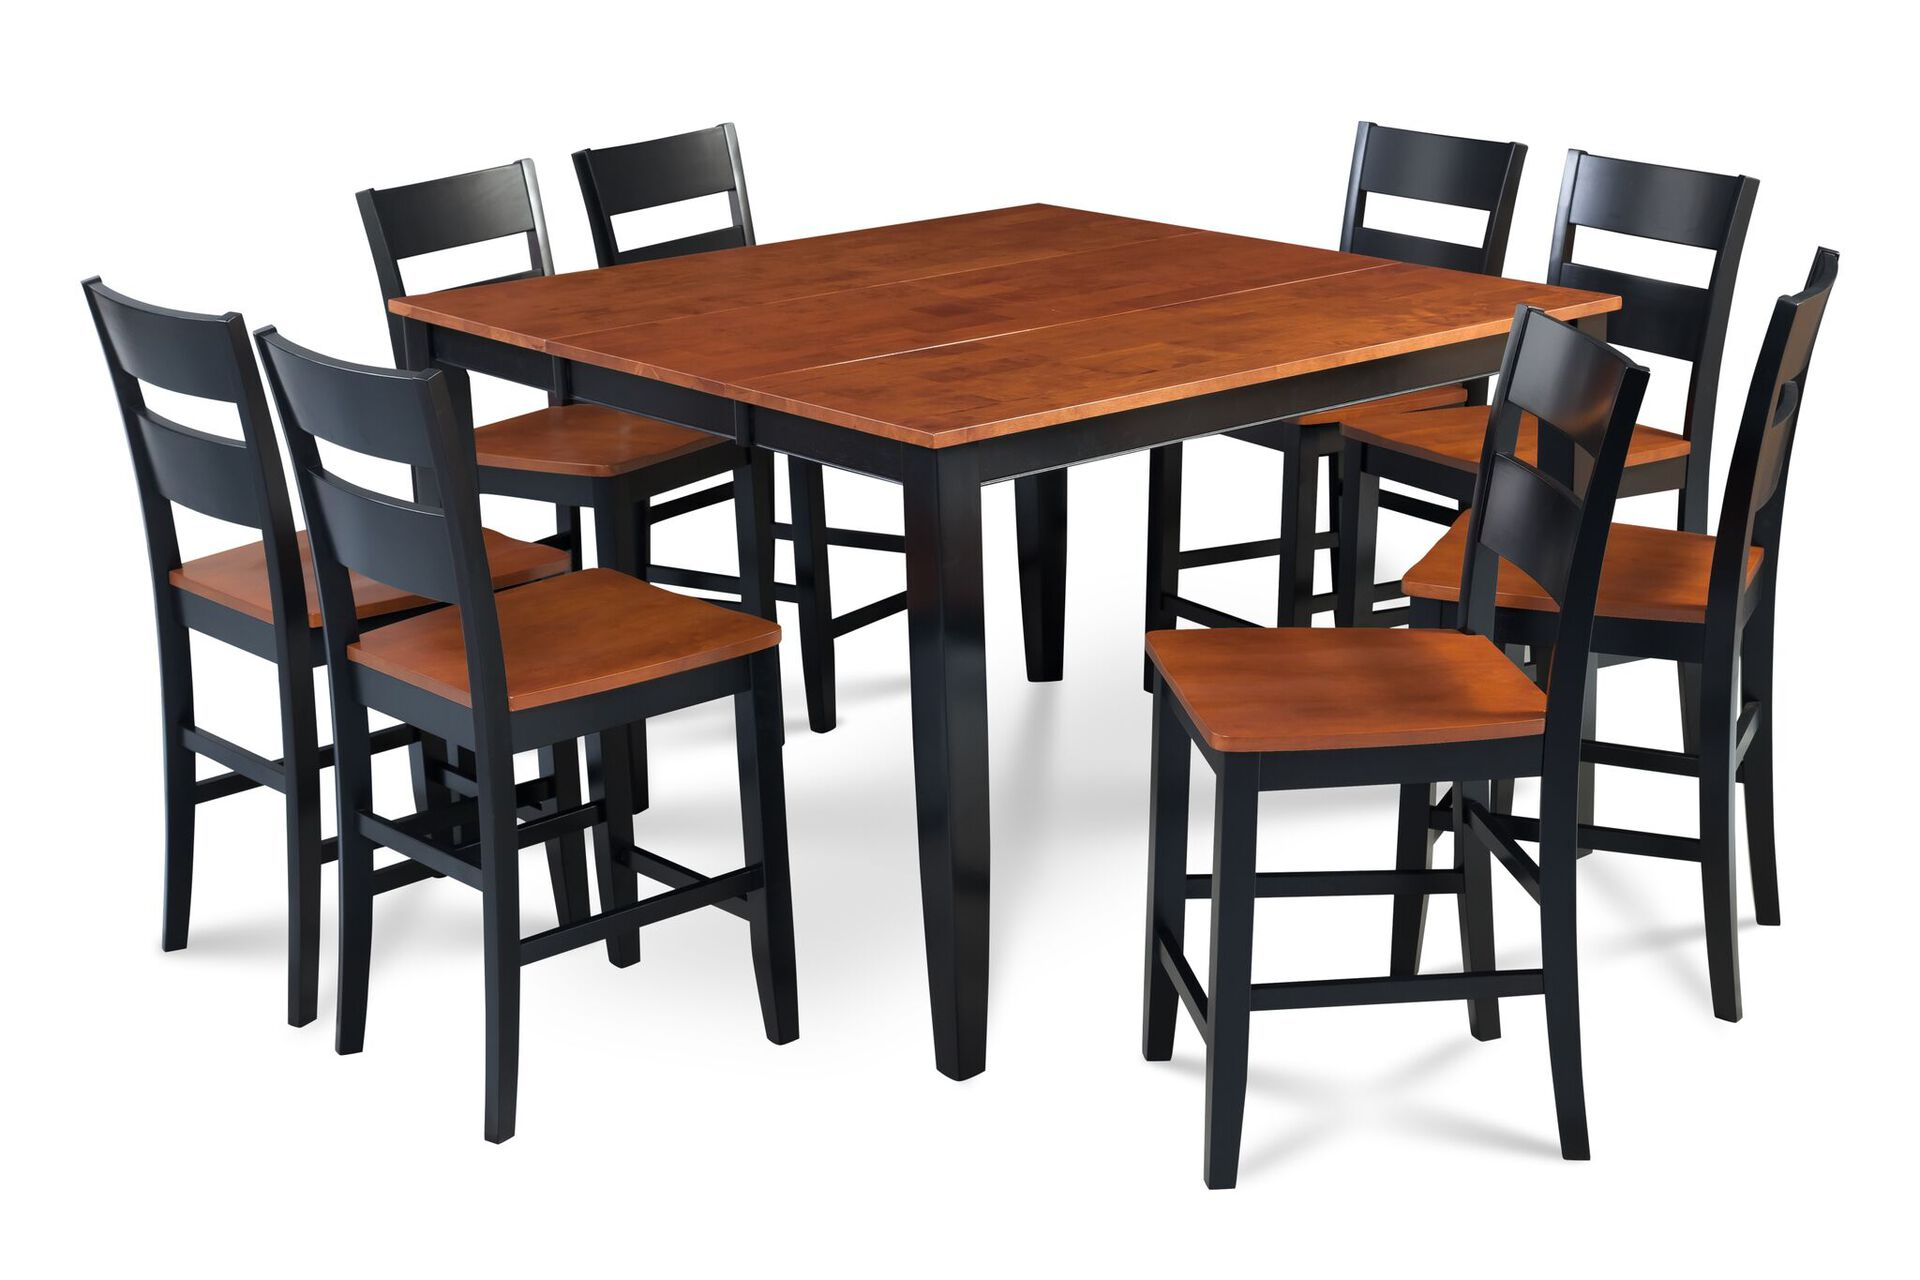 Fullerton Counter Height Cherry Seat Chair In Black 2 Piece Set